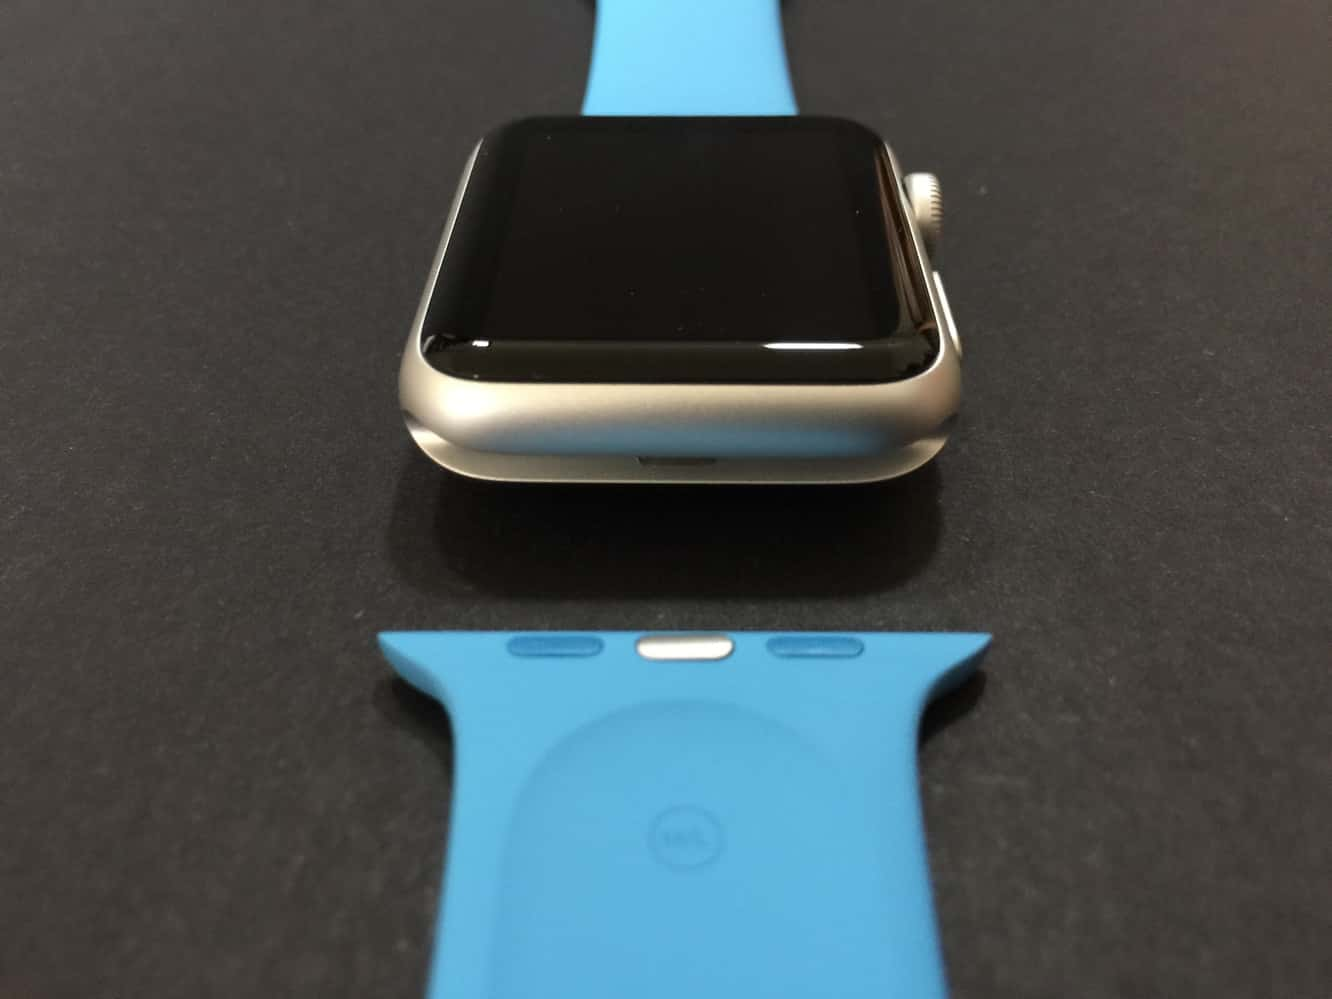 Rumor: Apple working on health tracking 'smart bands' for Apple Watch